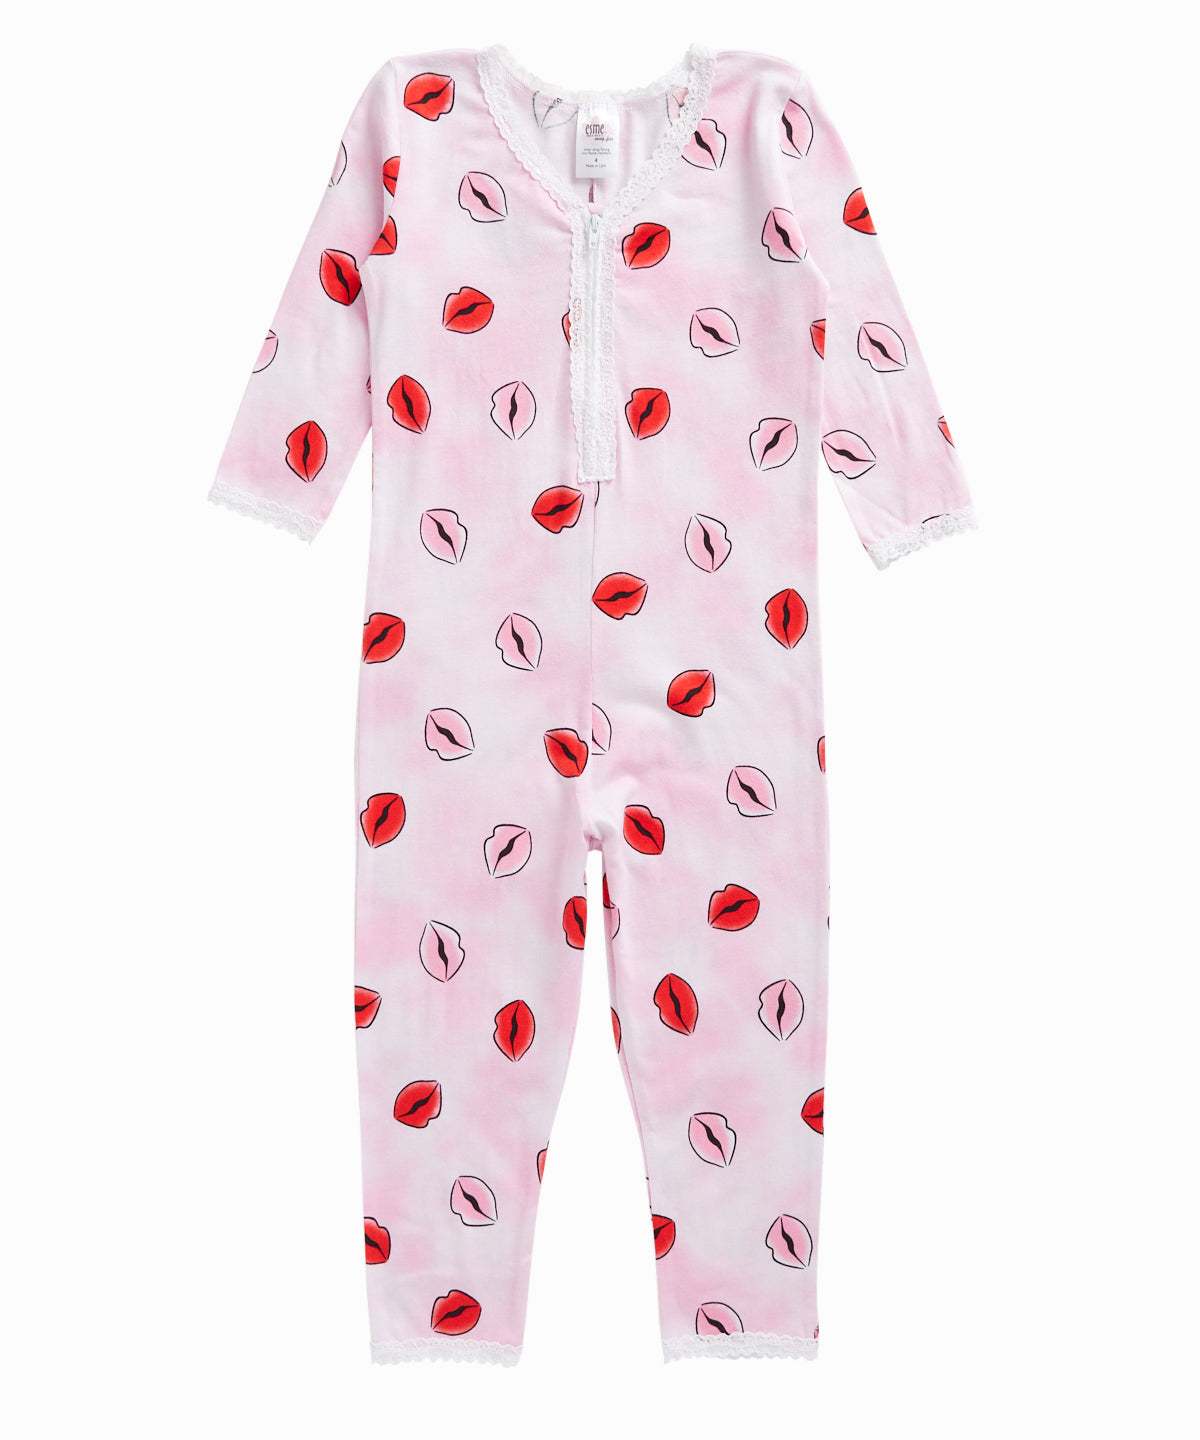 Lips Sleep Romper